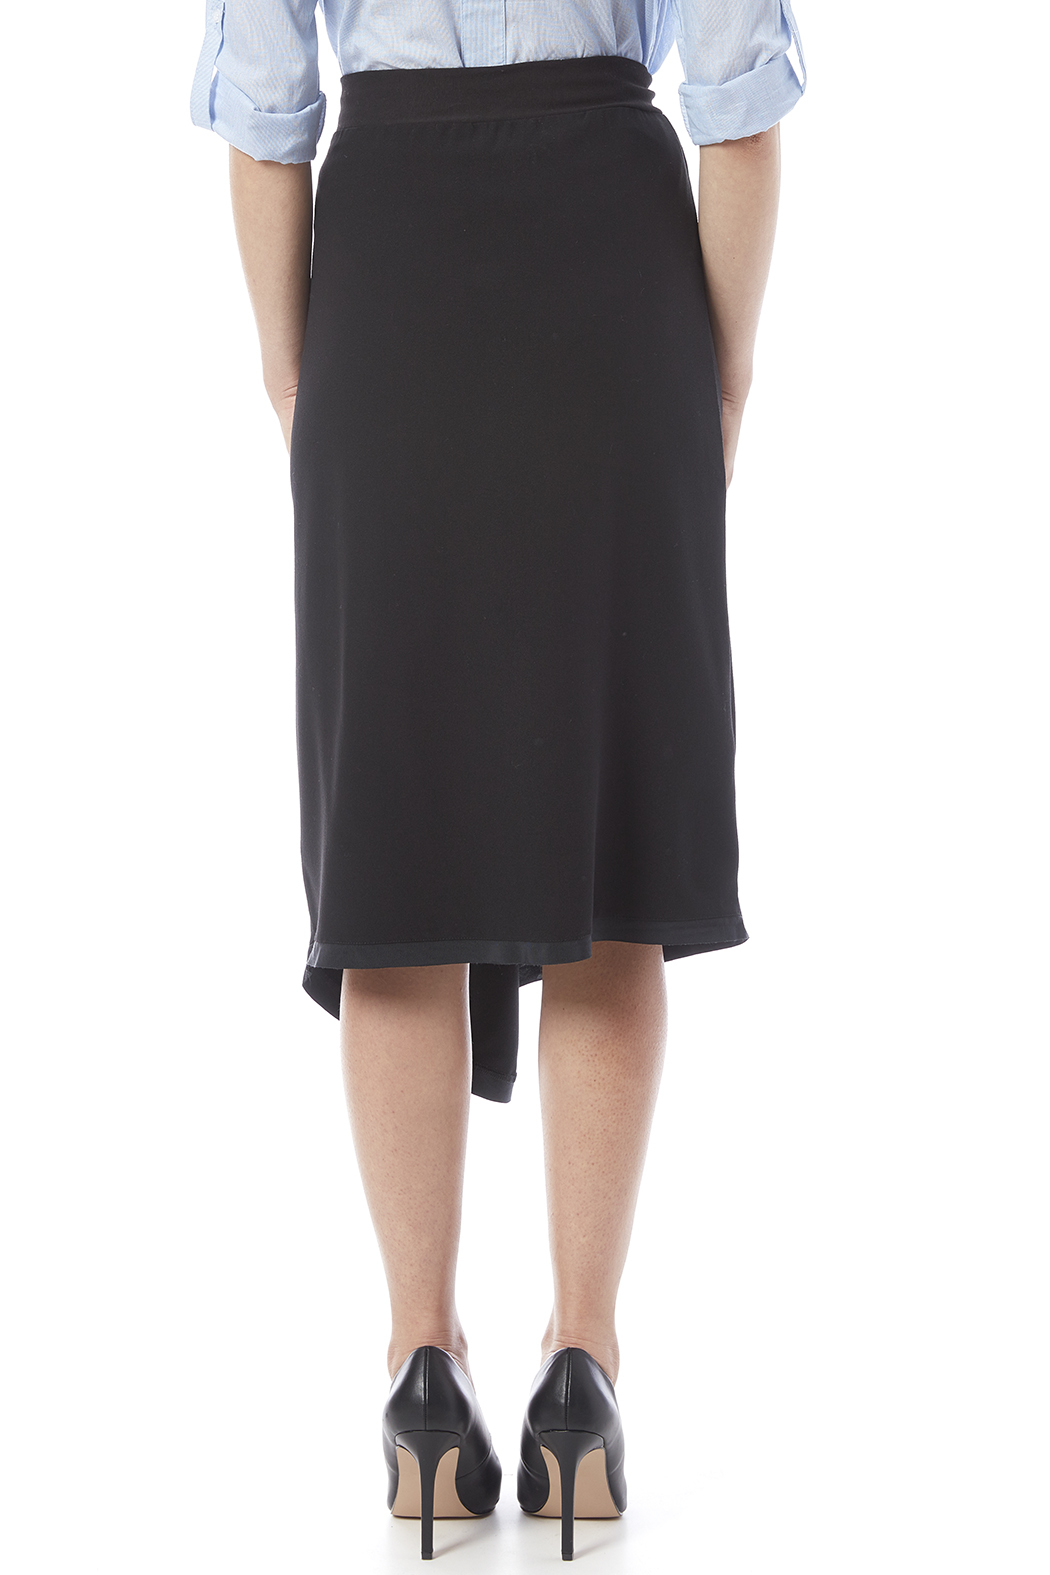 Neesh by D.A.R. Asymmetrical Midi Skirt - Back Cropped Image